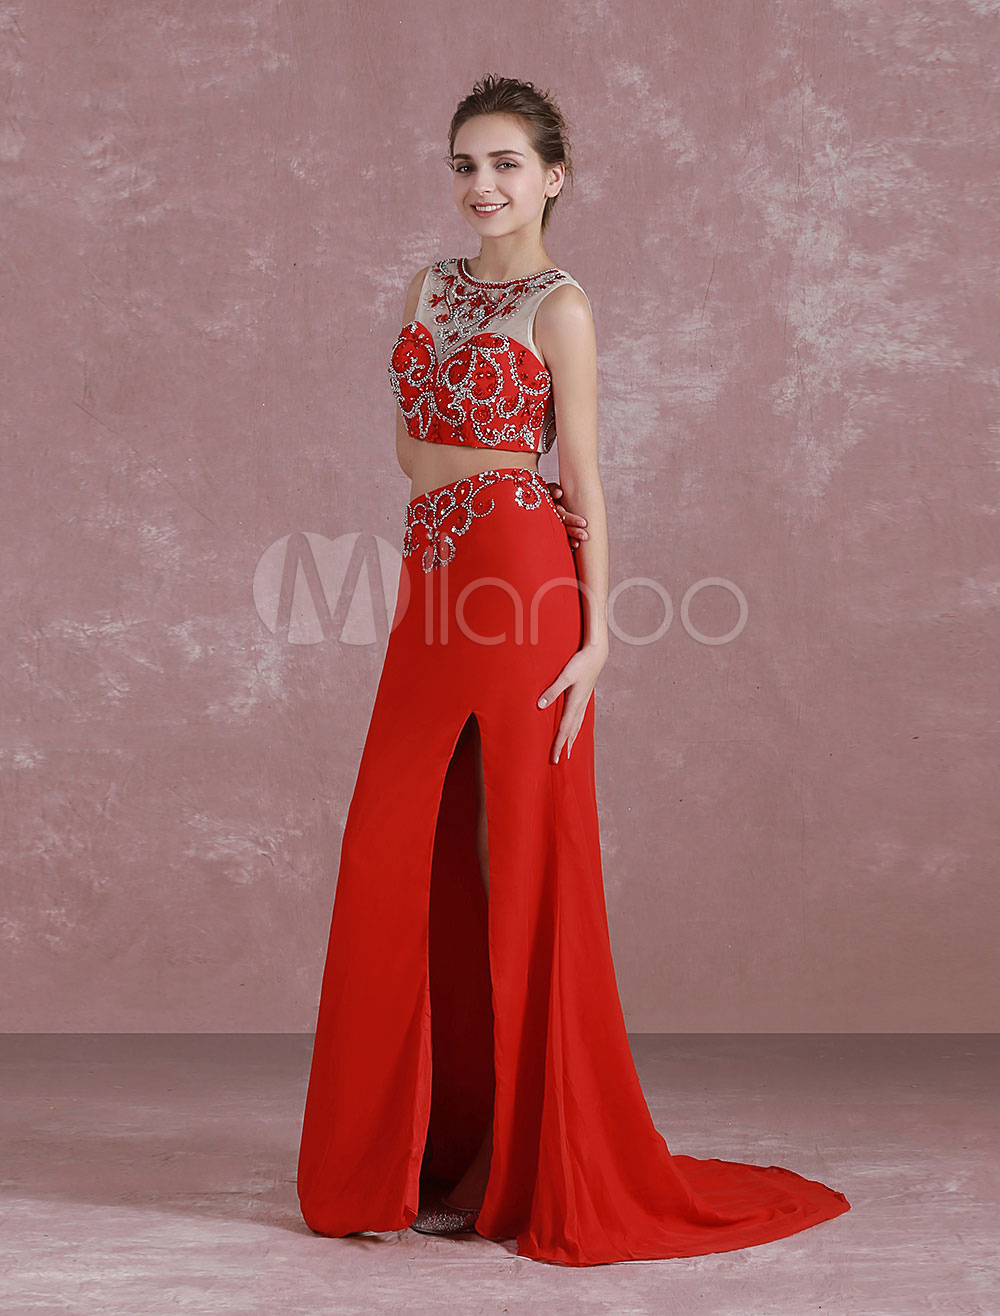 Buy Red Prom Dresses 2018 Long Two Piece Prom Dress Crop Top Mermaid Split Beading Satin Train Evening Dress for $180.89 in Milanoo store